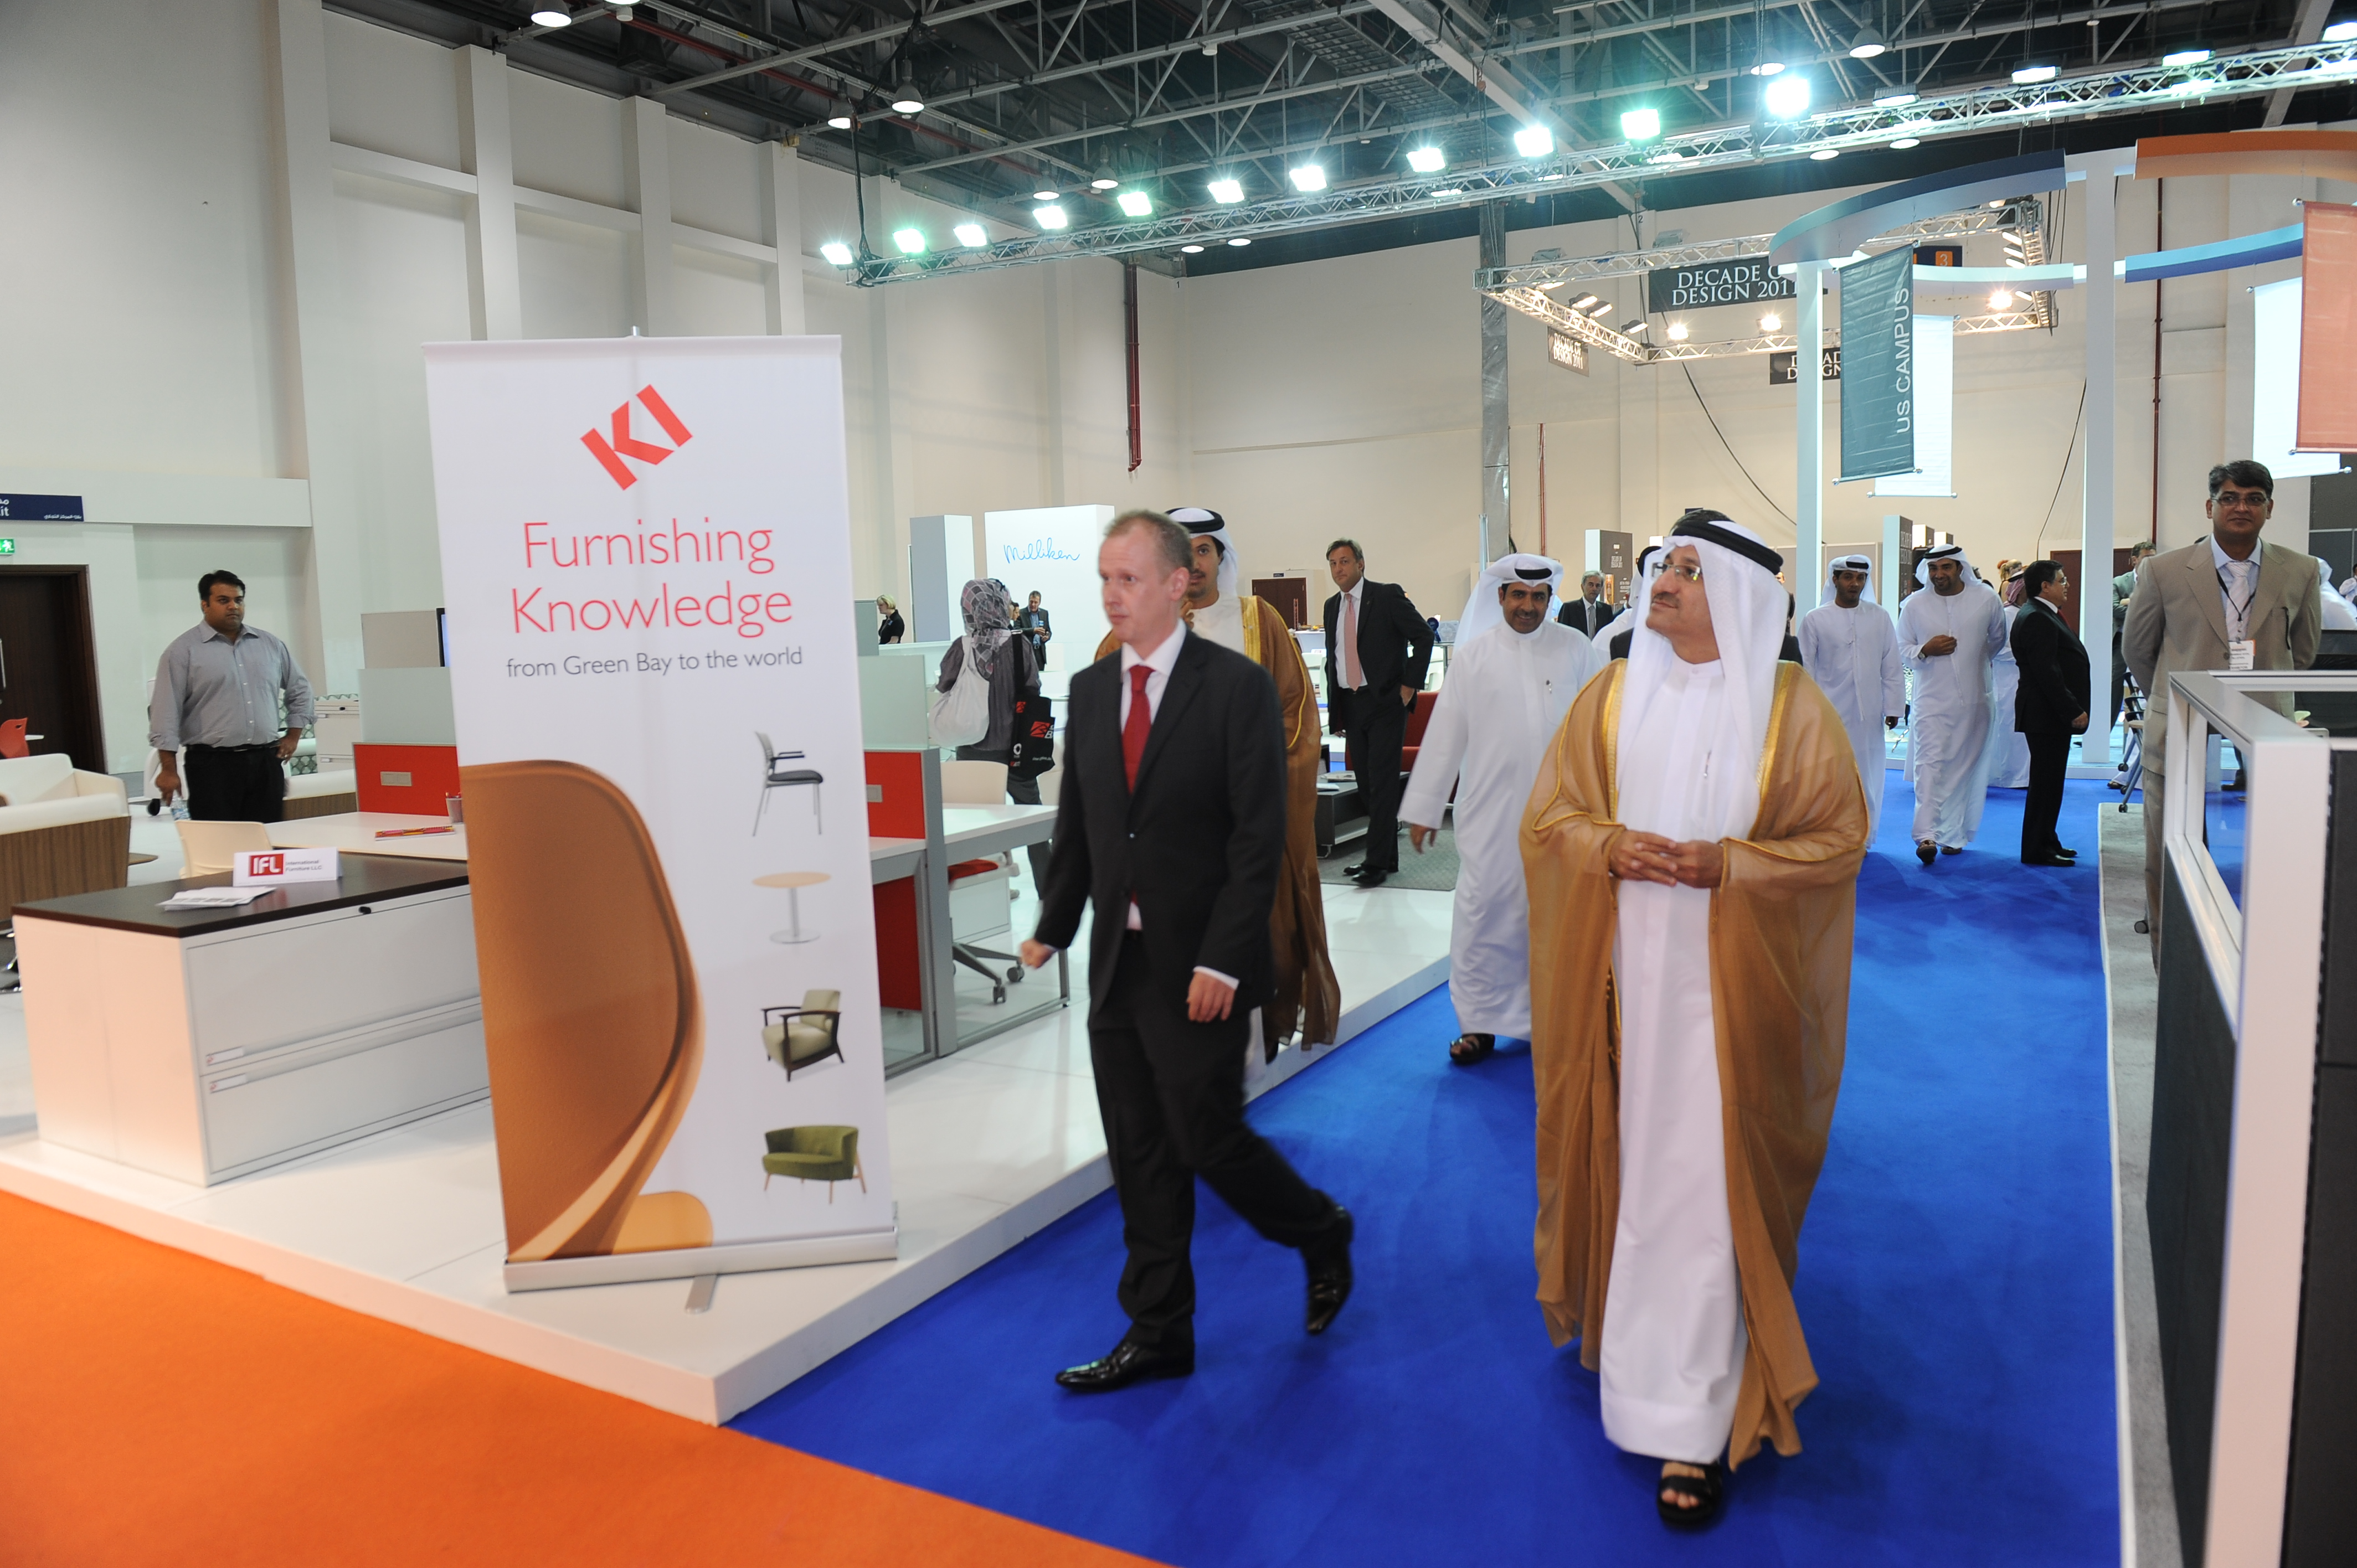 The Us Campus At Dubai Office Exhibition Opens